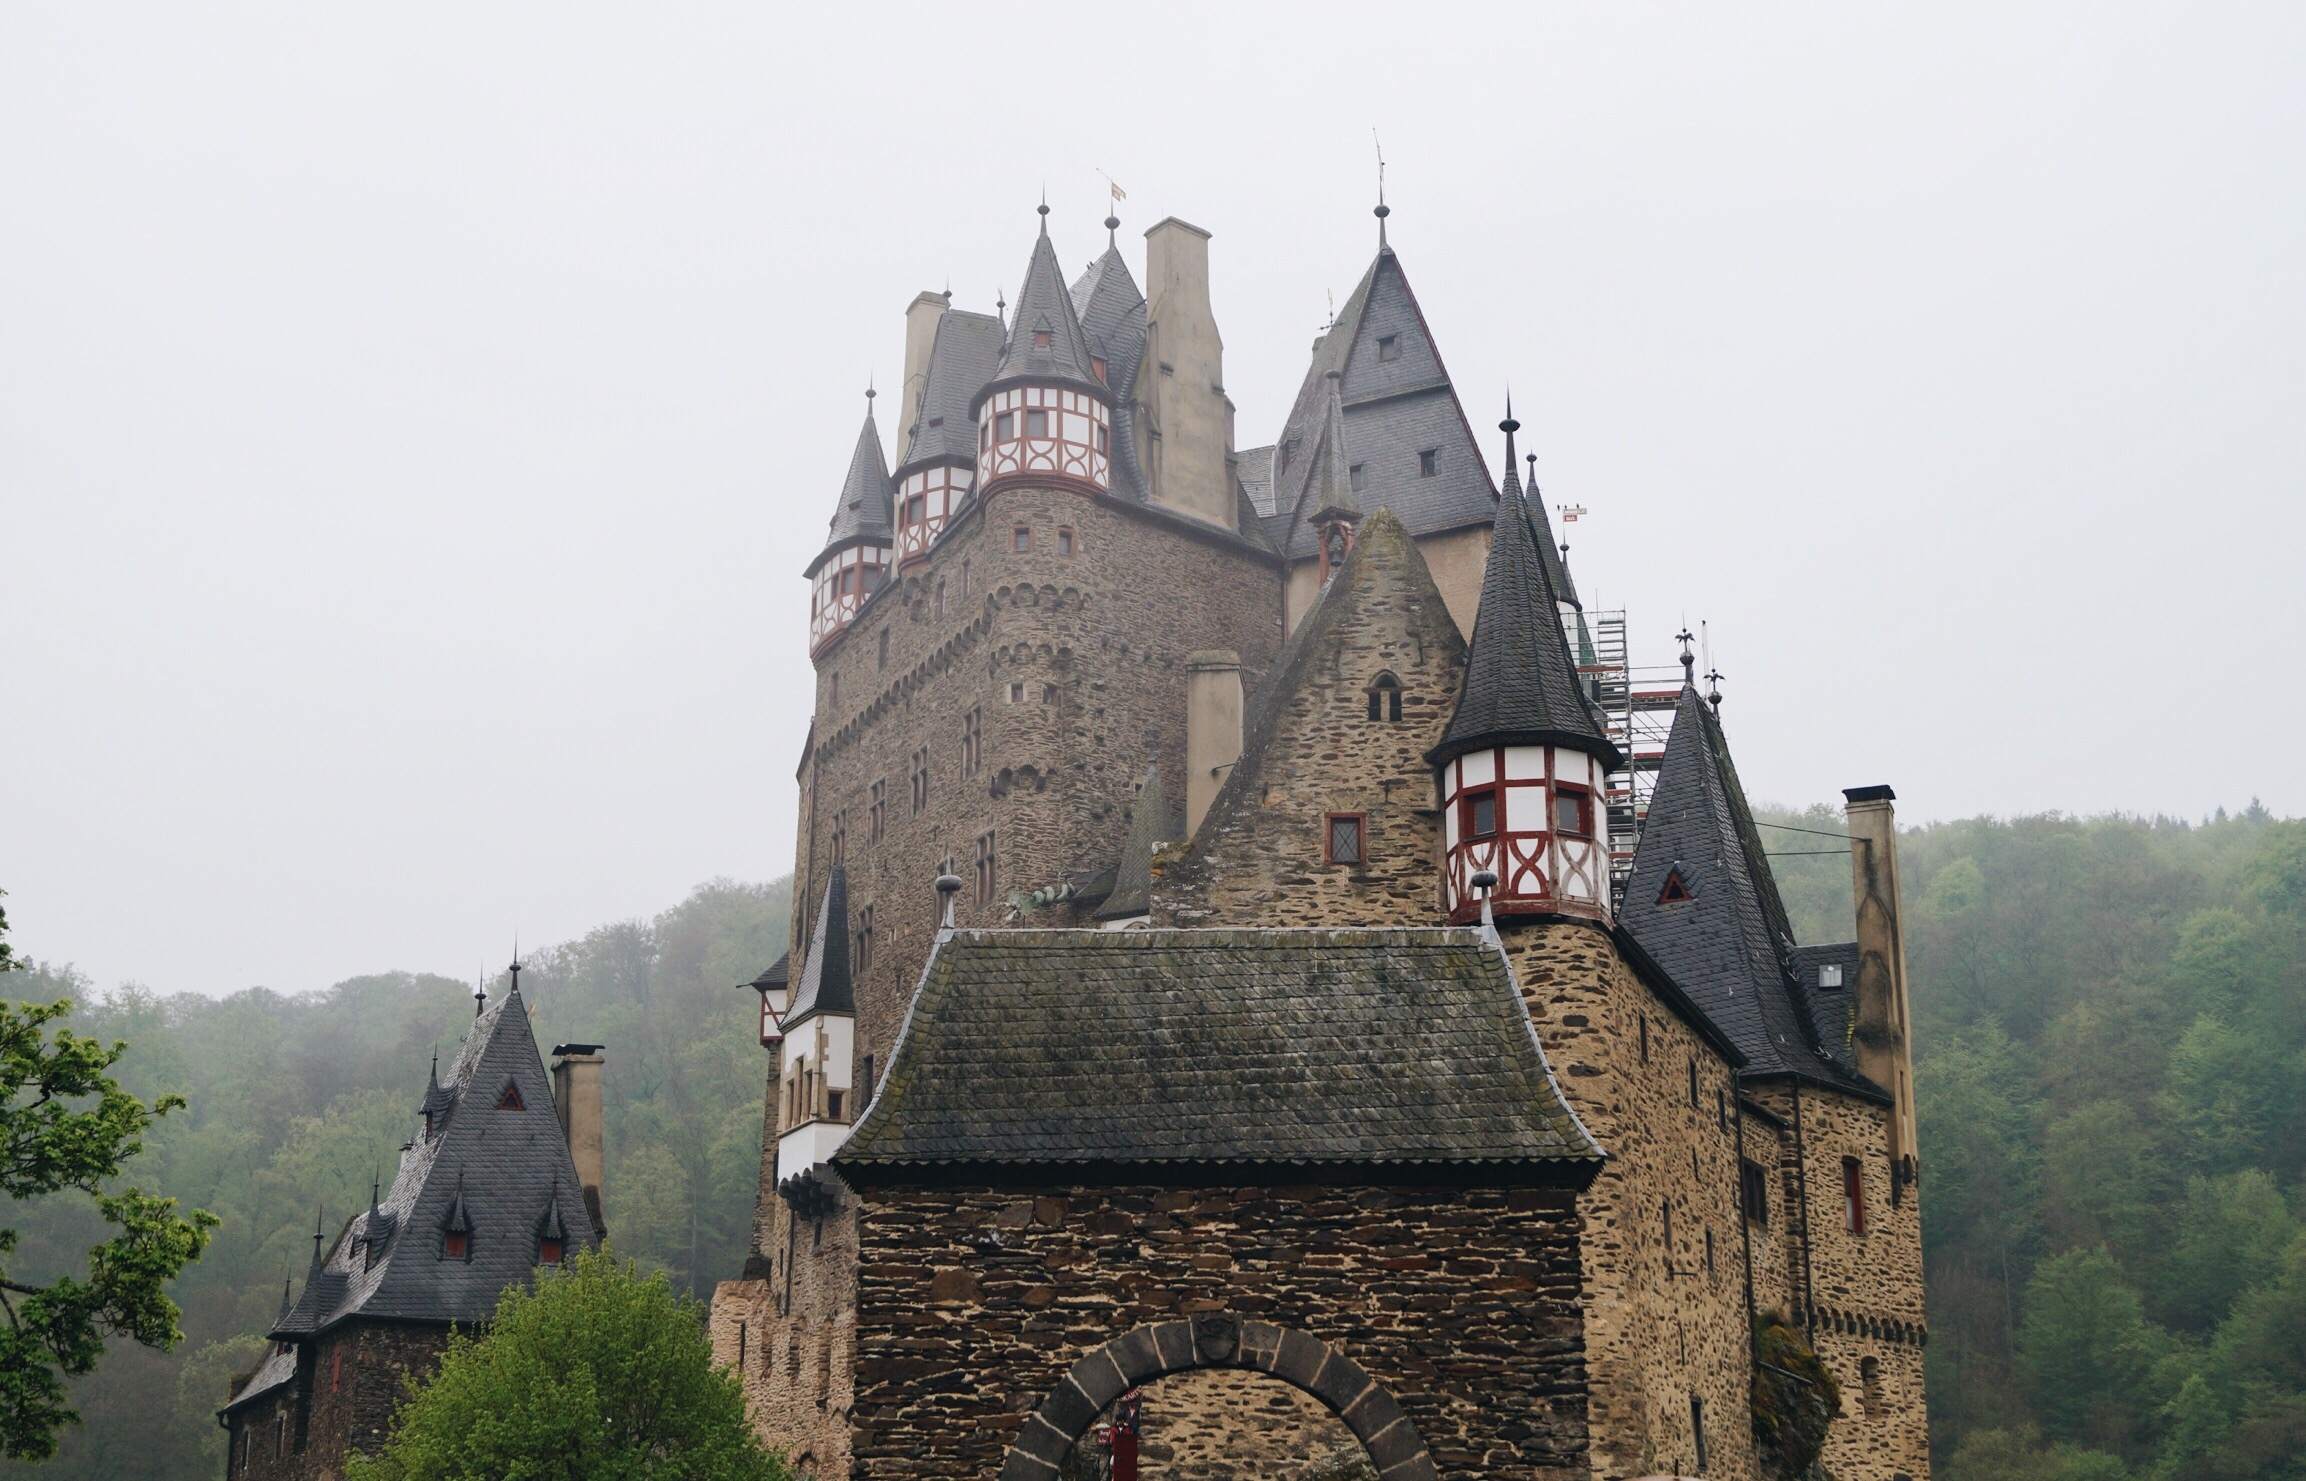 Burg Eltz Eifel Mosel Deutschland Burgen Castle Germany german game of thrones harry potter hogwarts